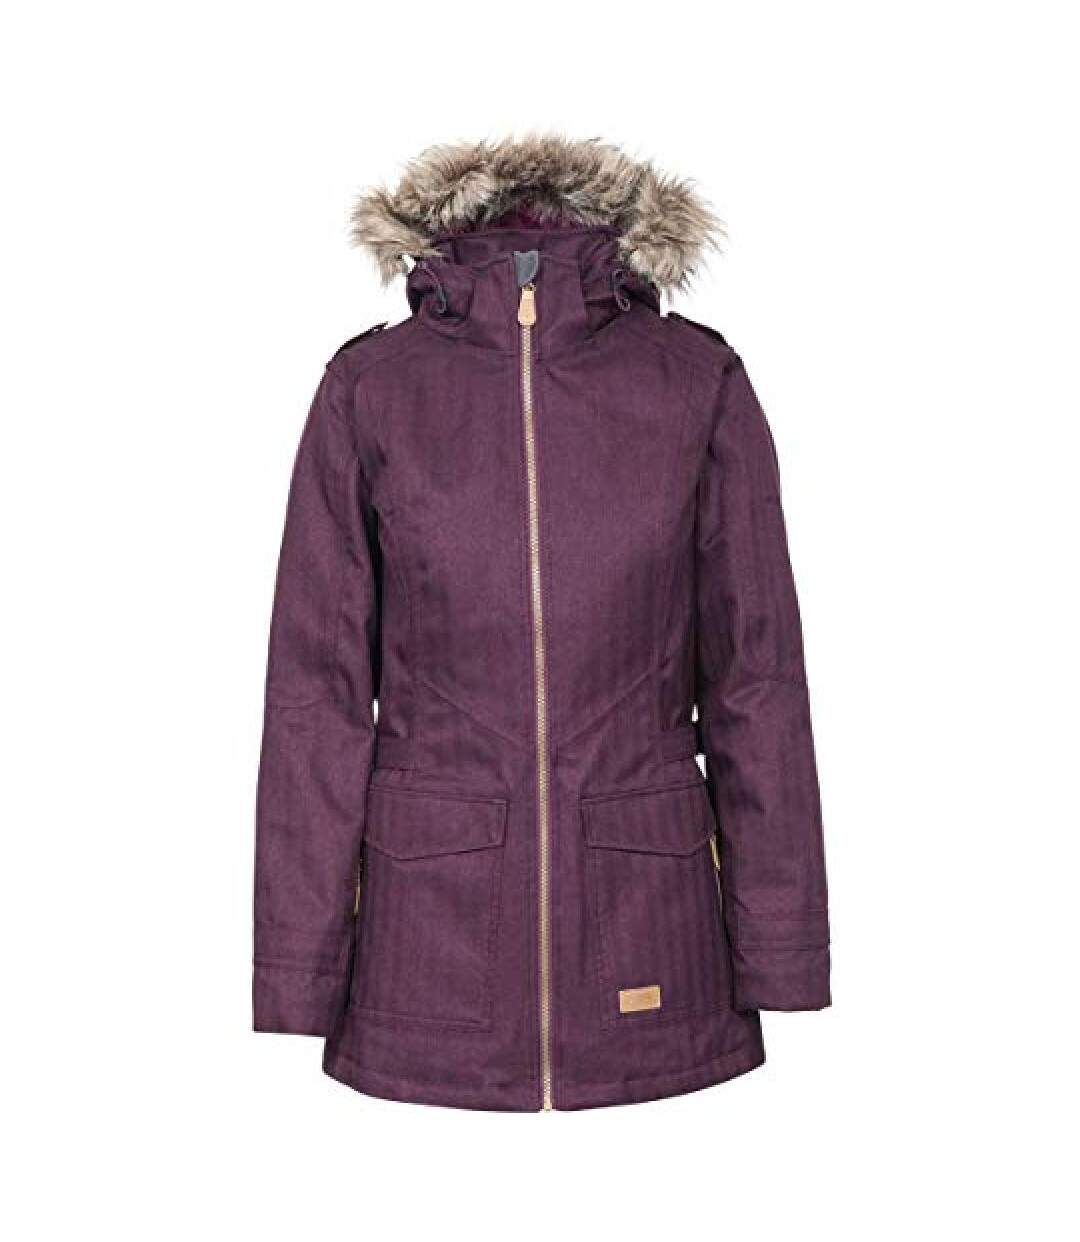 Trespass Womens/Ladies Everyday Waterproof Jacket (Potent Purple) - UTTP4437